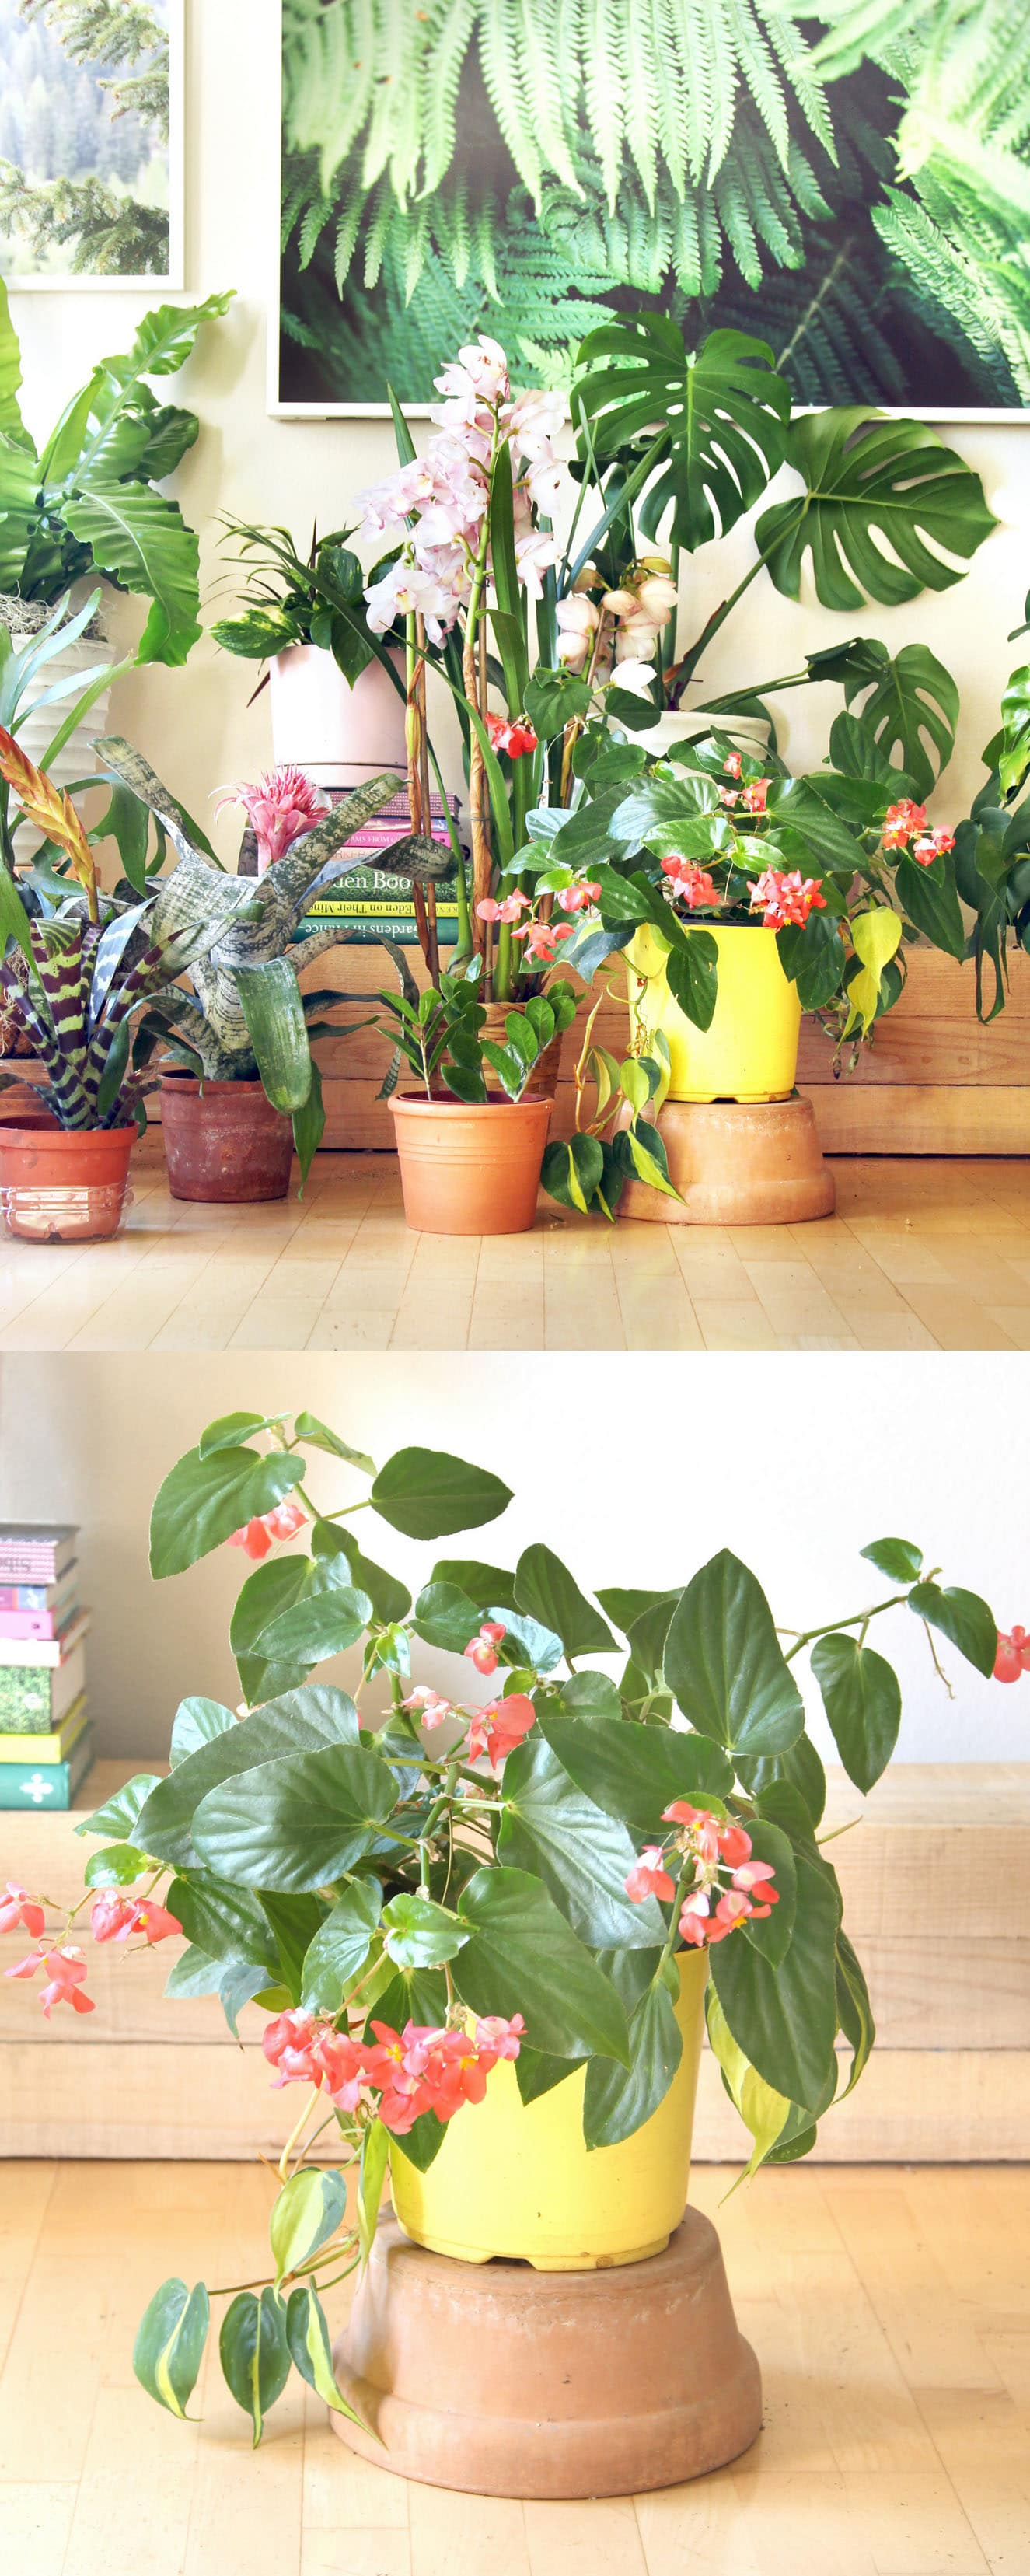 18 most beautiful indoor plants 5 easy care tips for Maintenance of indoor plants